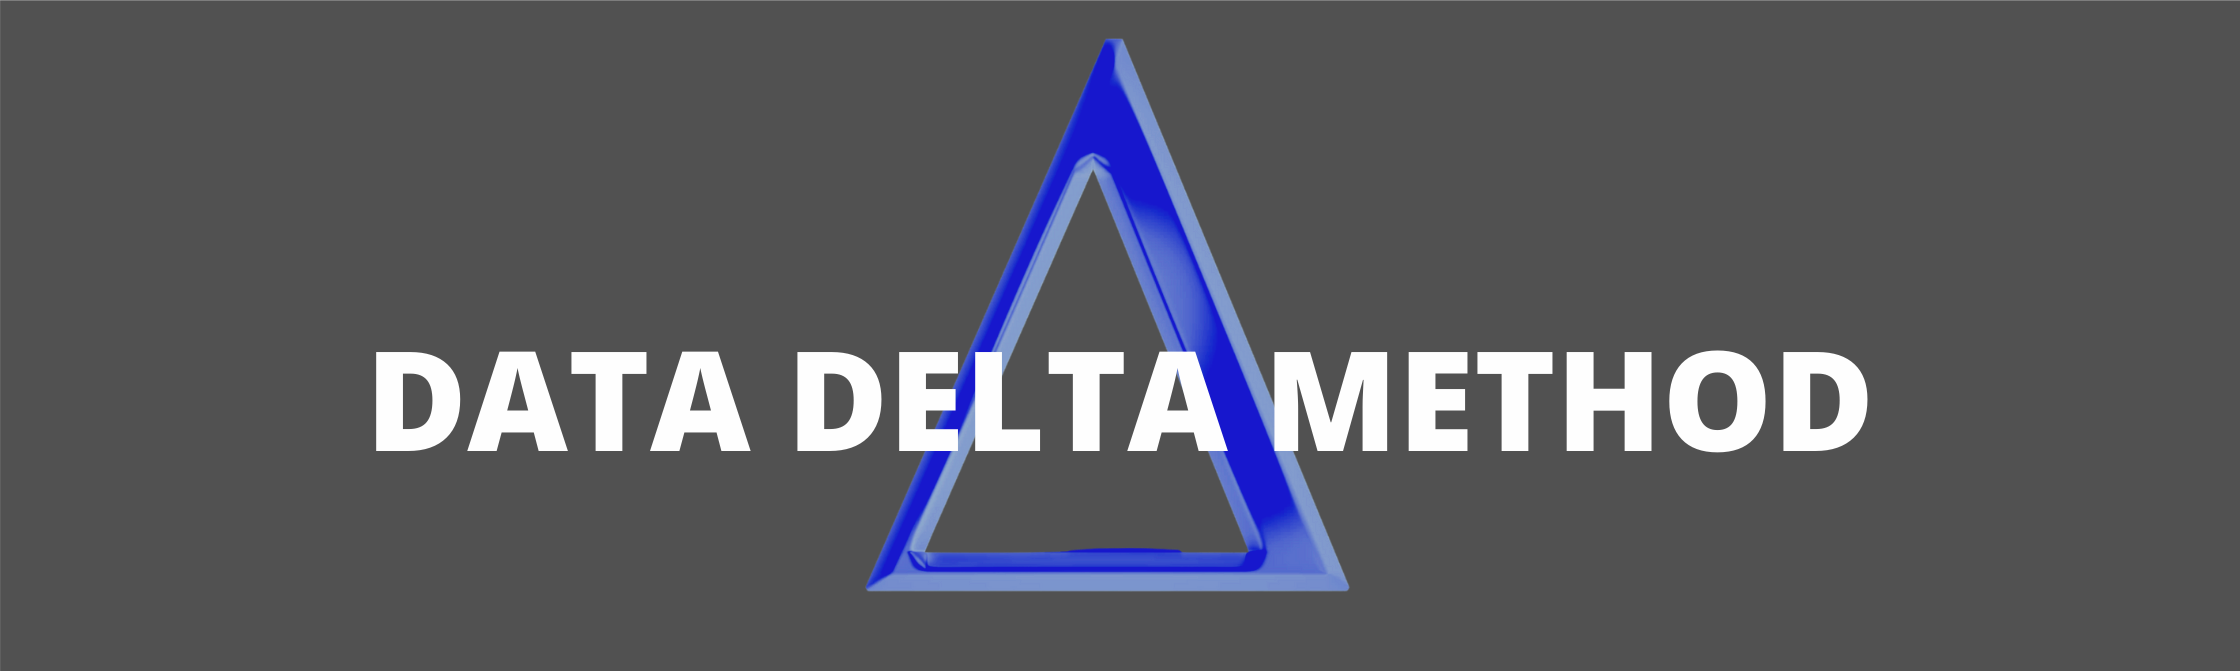 Data Delta Method